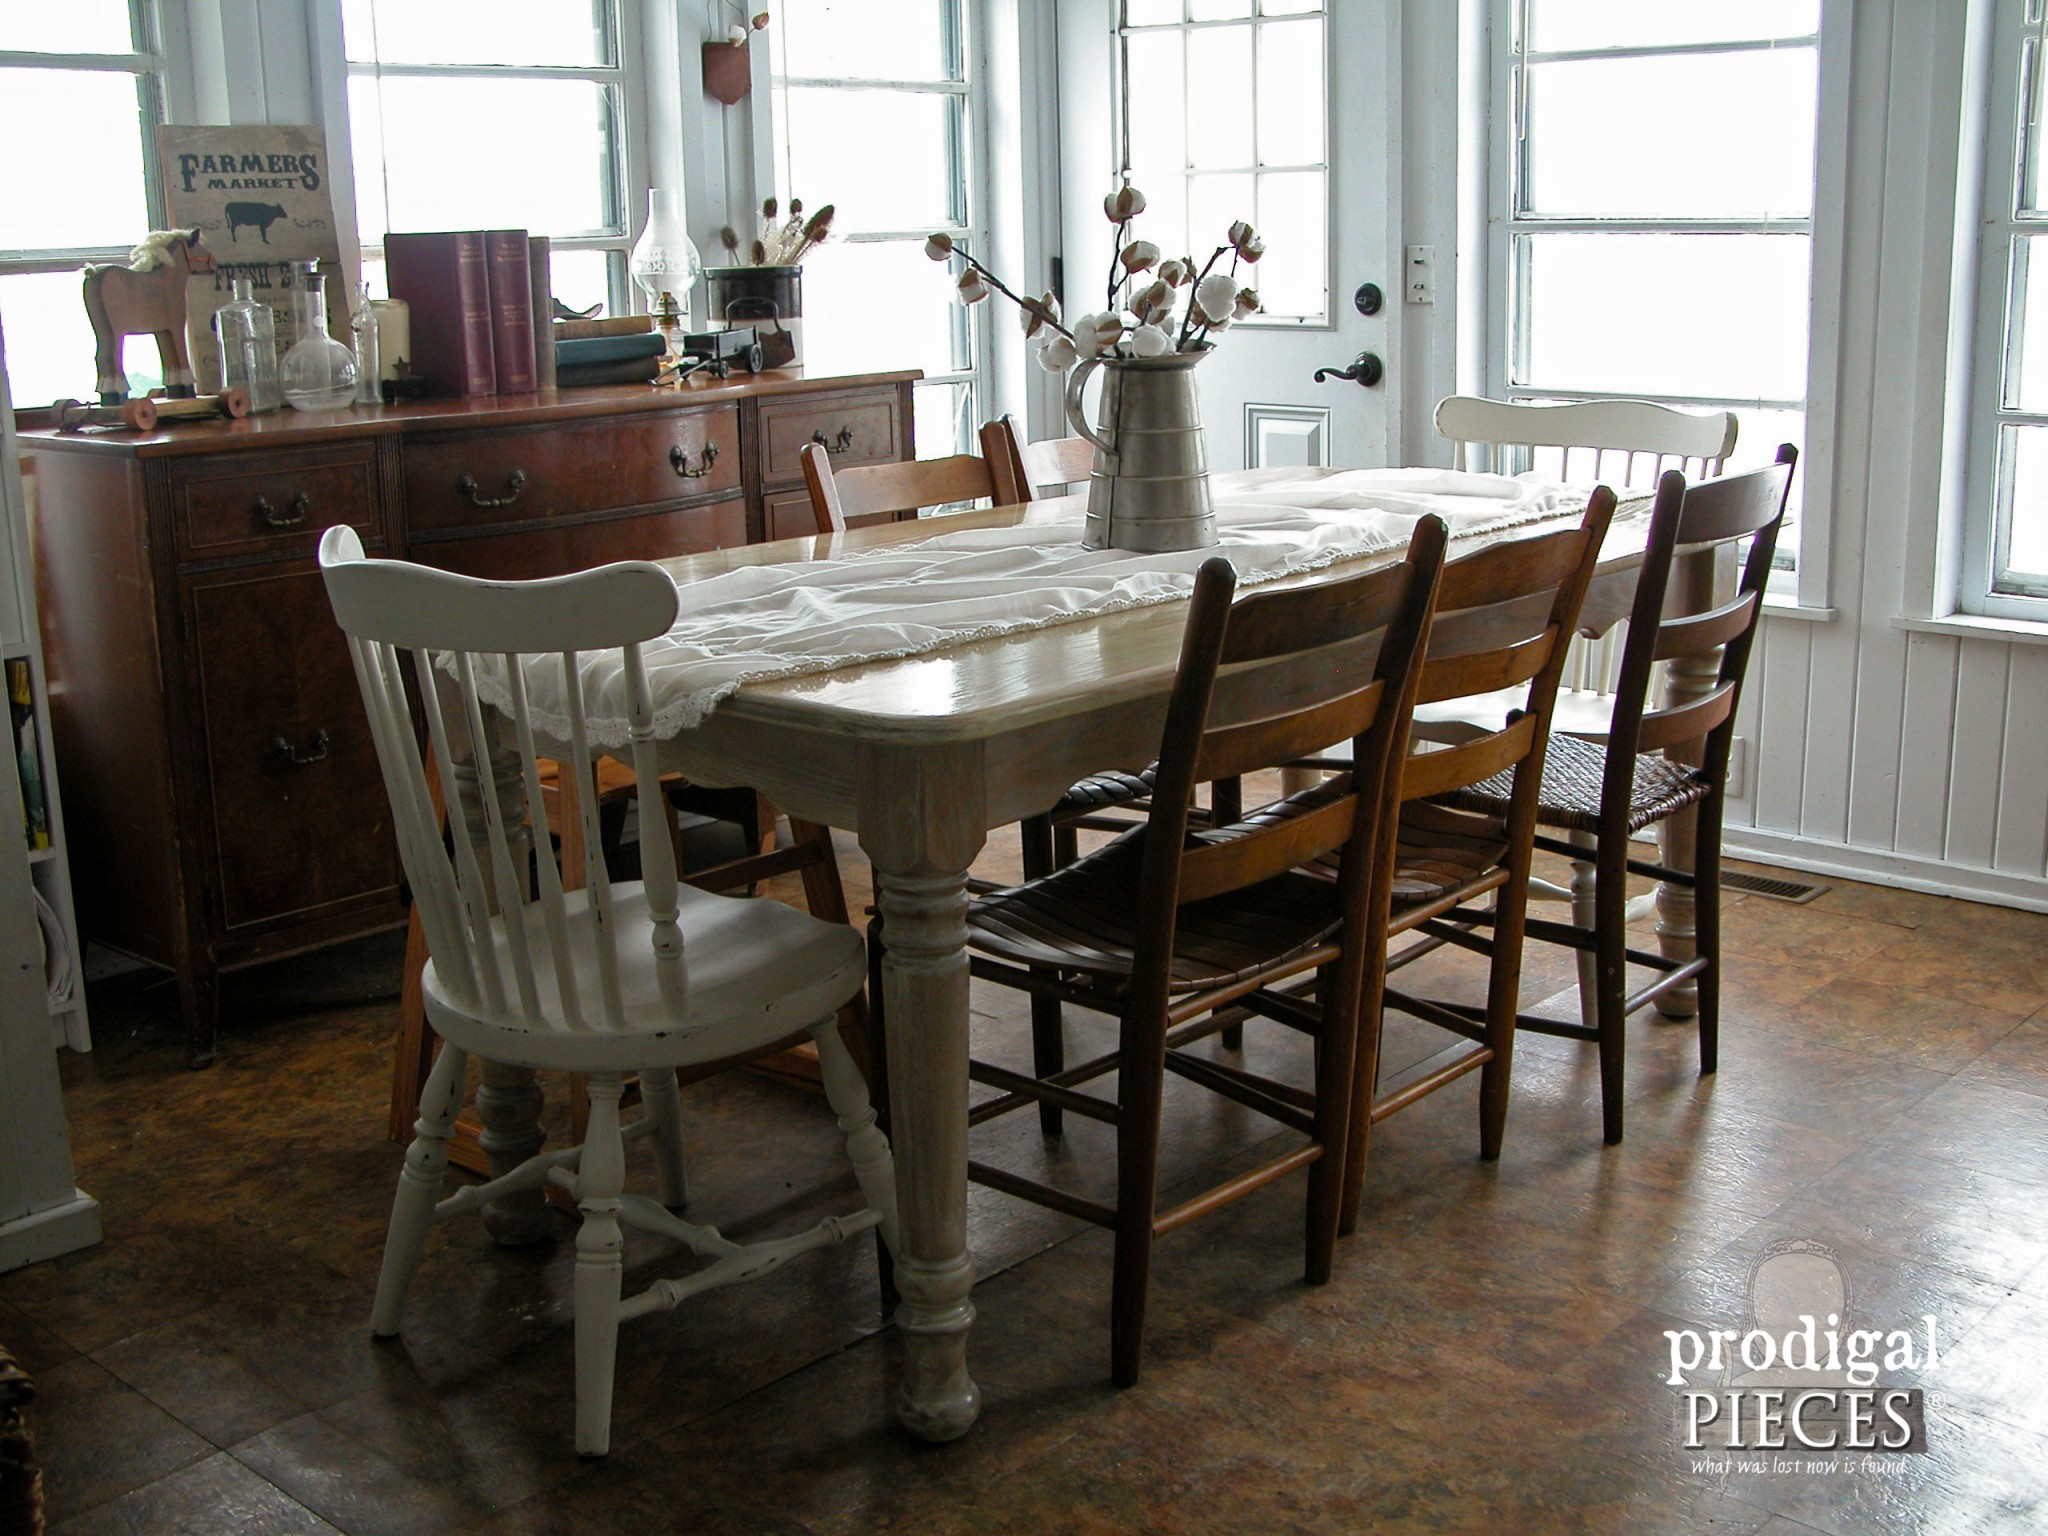 Lovely Whitewashed or Limewashed Farmhouse Table by Prodigal Pieces prodigalpieces